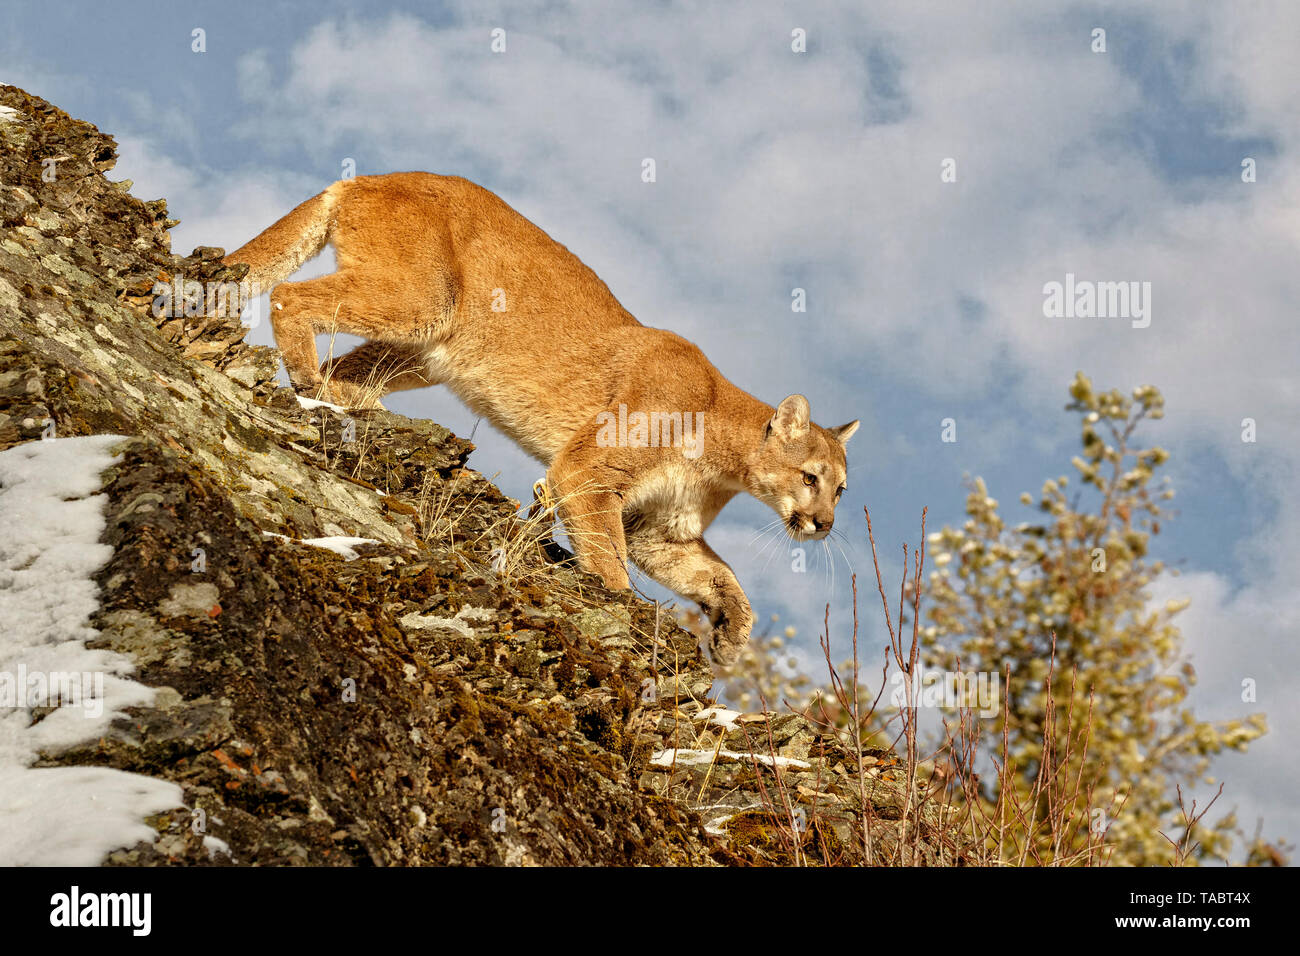 The cougar goes by many names including mountain lion, puma, panther